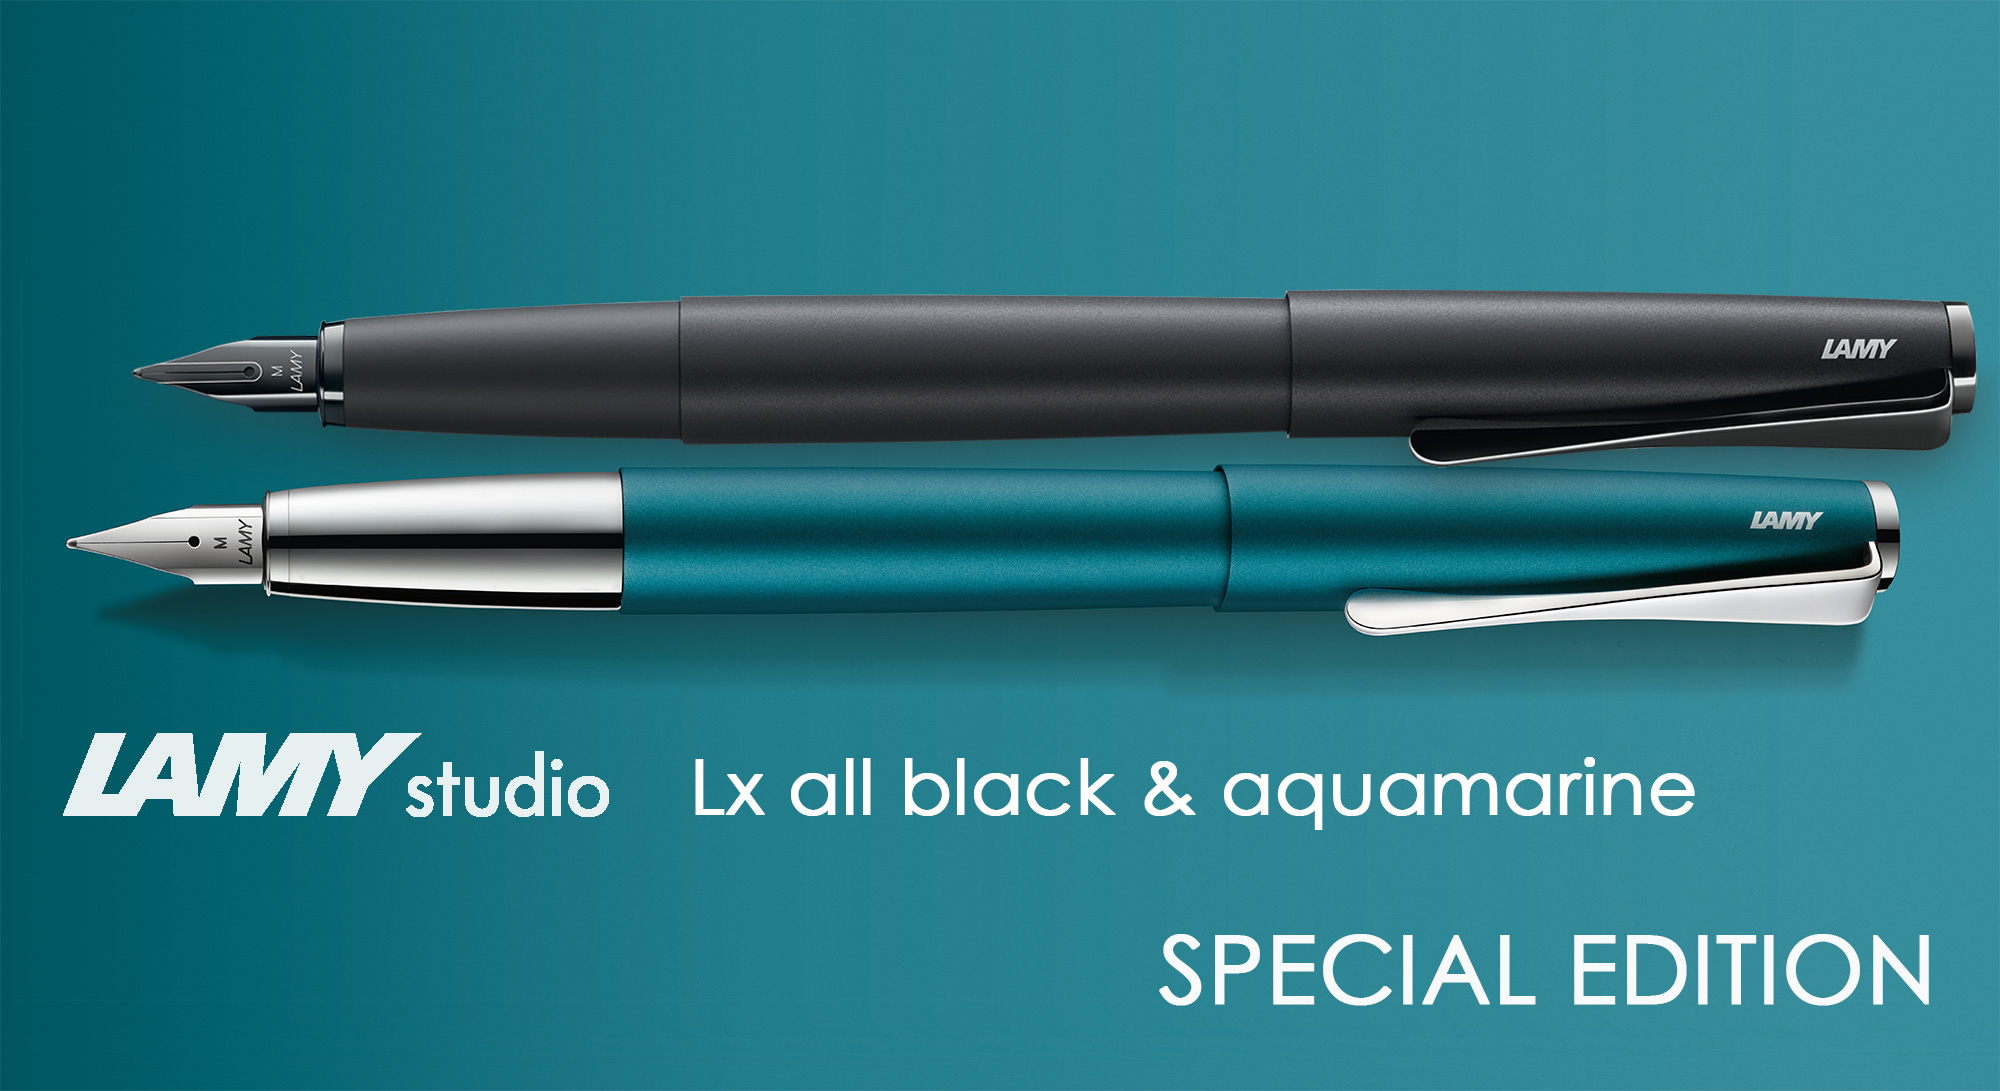 Lamy Studio Aquamarine and Lx All Black